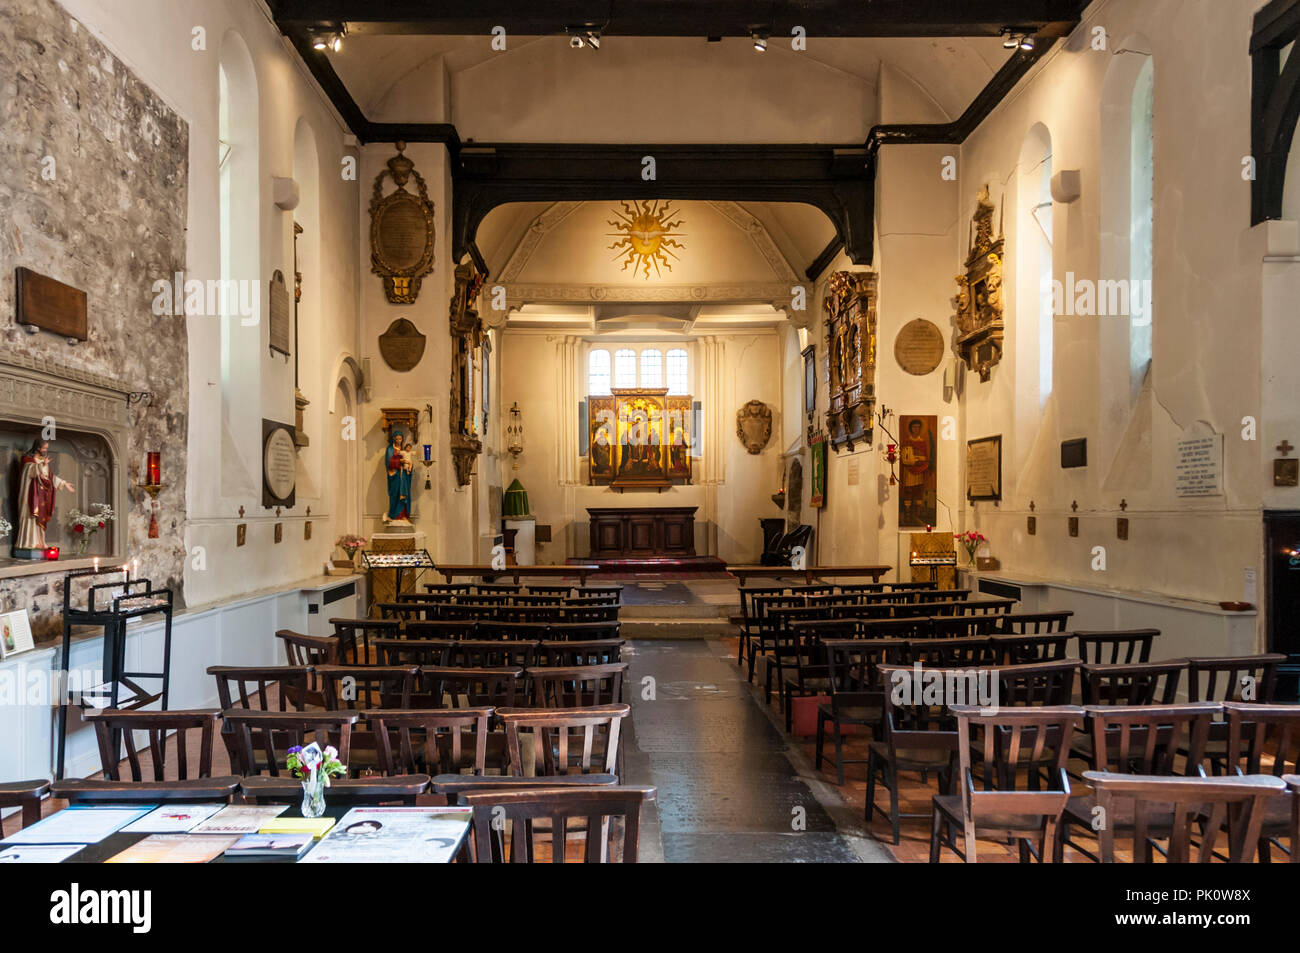 Interior of St Pancras Old Church. Believed to be one of the oldest Christian sites in England, it was largely rebuilt in Victorian times. - Stock Image